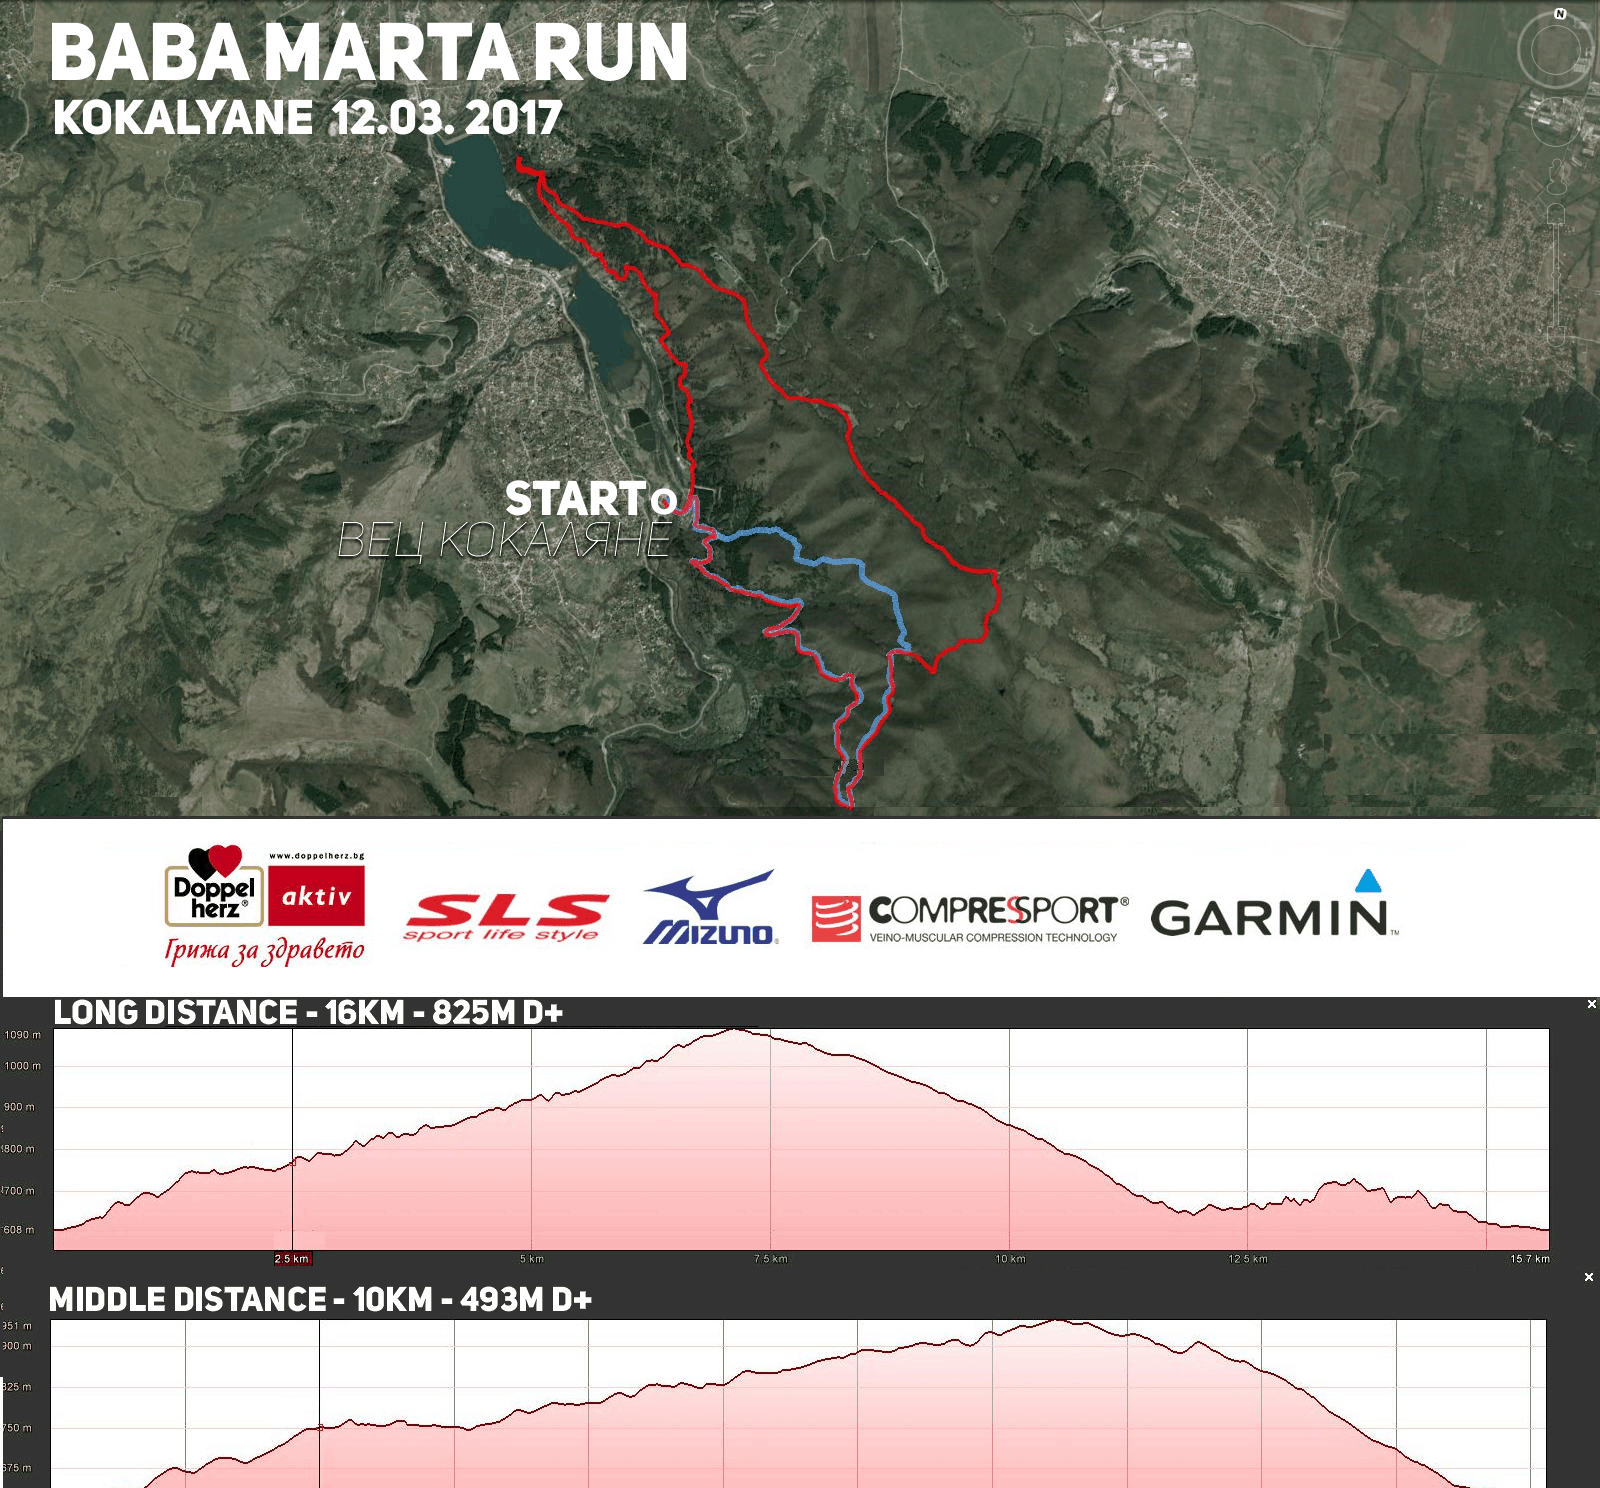 Baba Marta Run map 2017